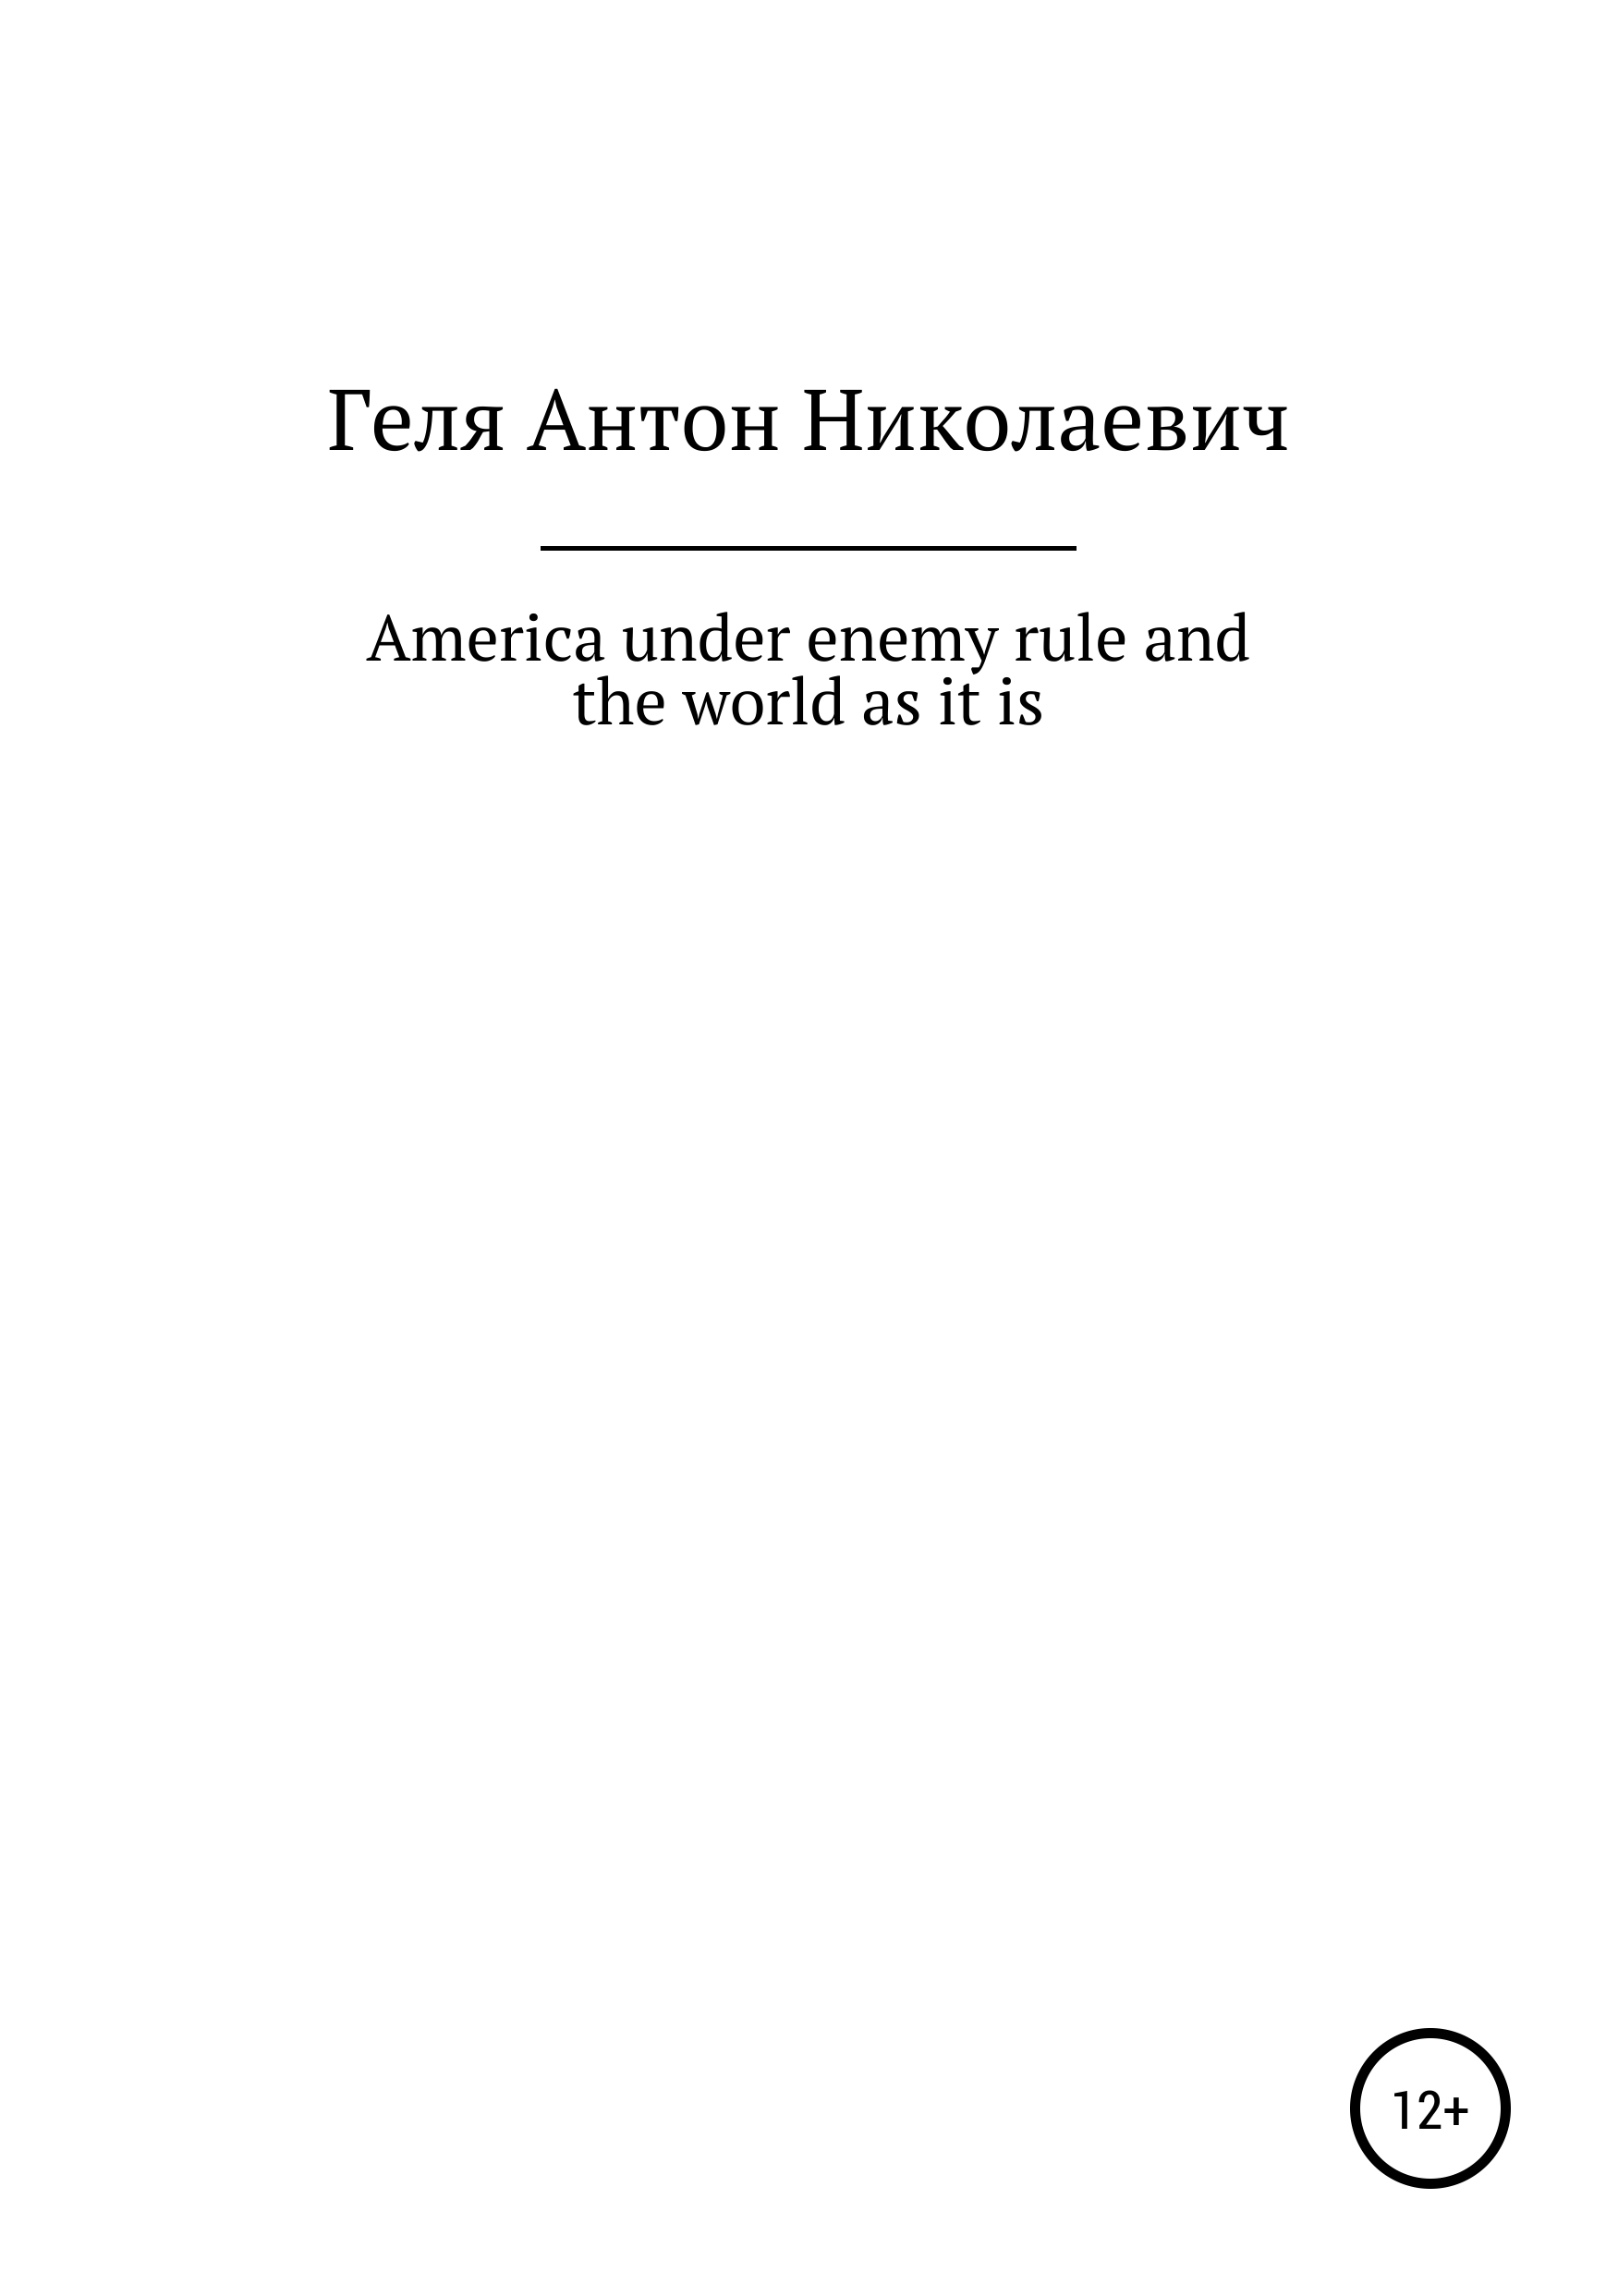 Антон Николаевич Геля America under enemy rule and the world as it is